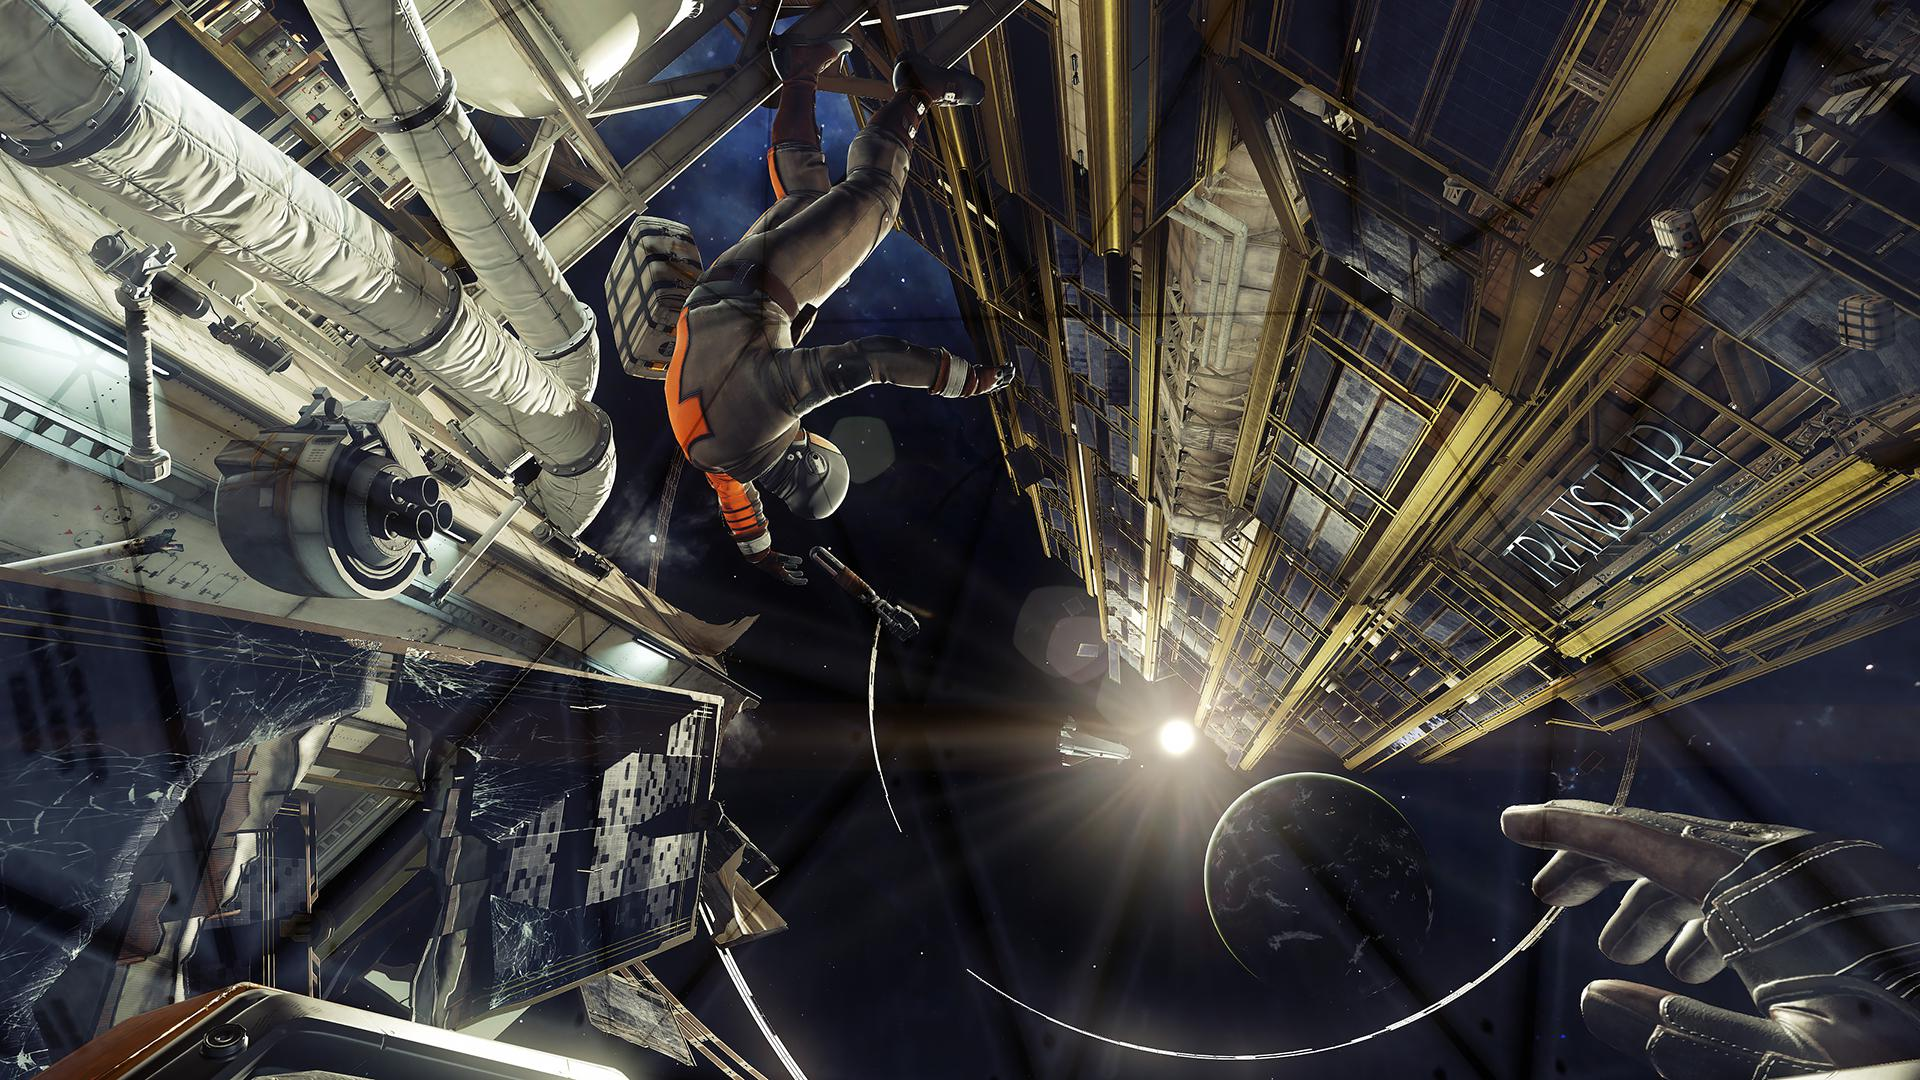 You'll be able to venture outside Talos 1 in a spacesuit – just be careful not to crash into any debris!